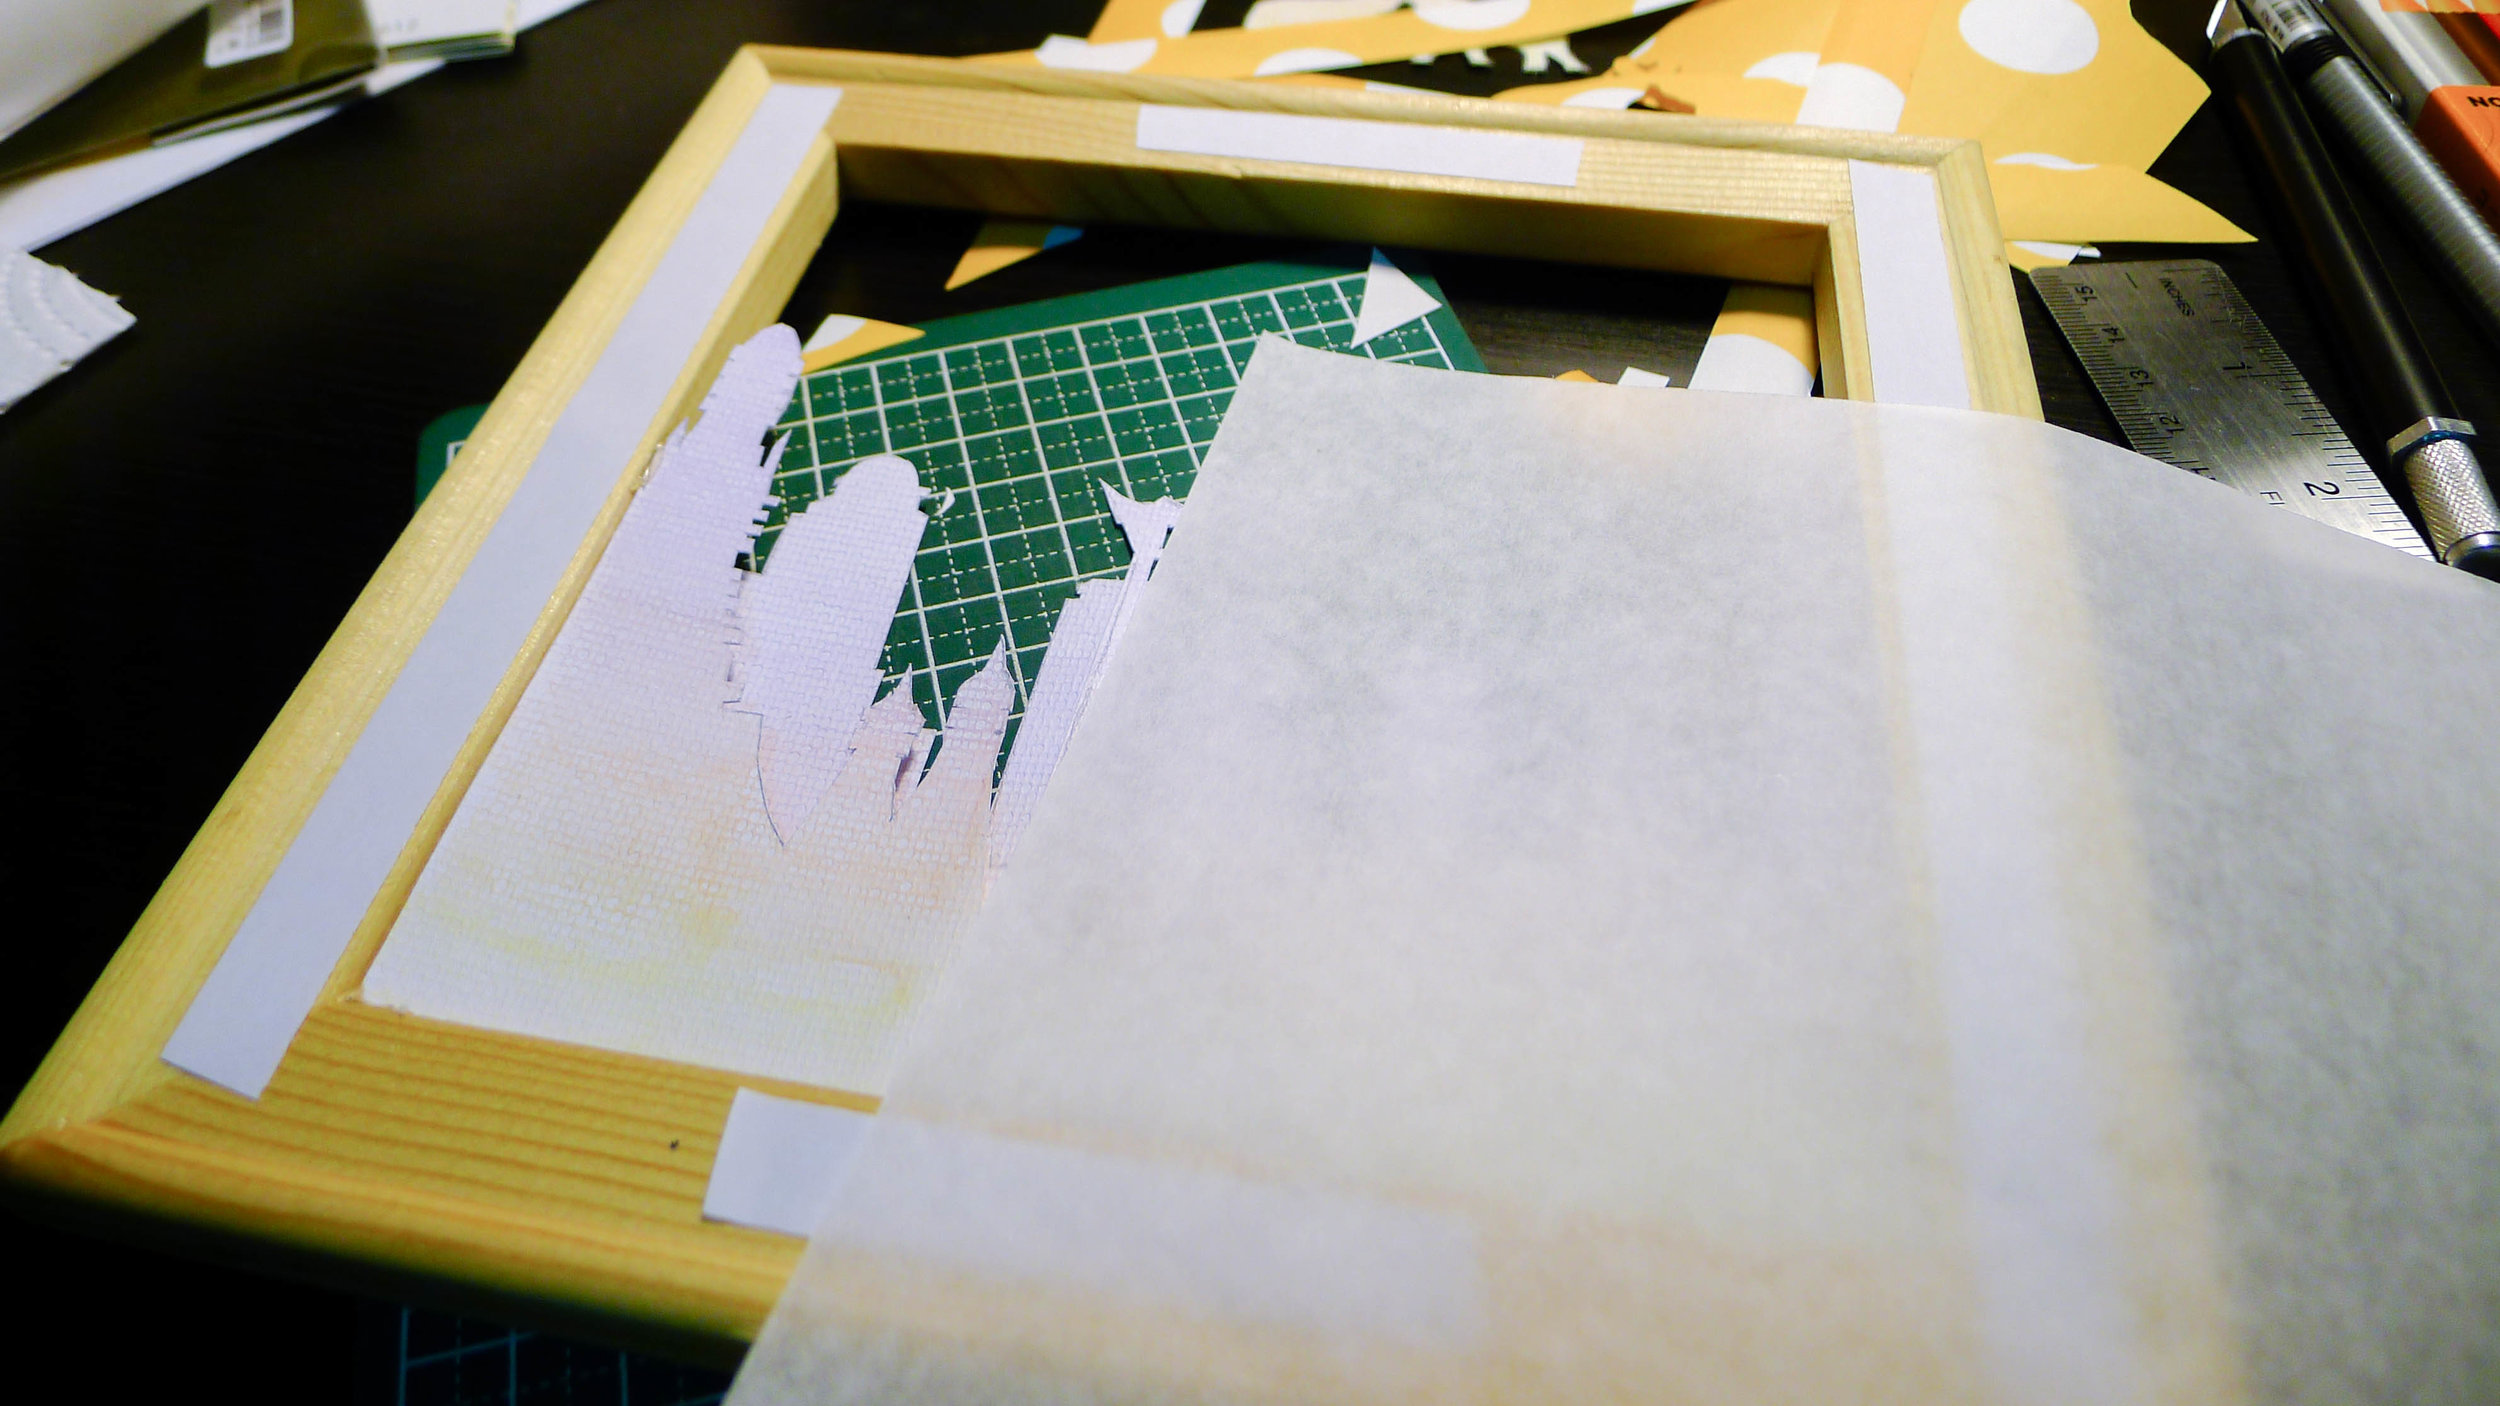 2017_DIY Lightbox_Putting the Front Layer On.jpg